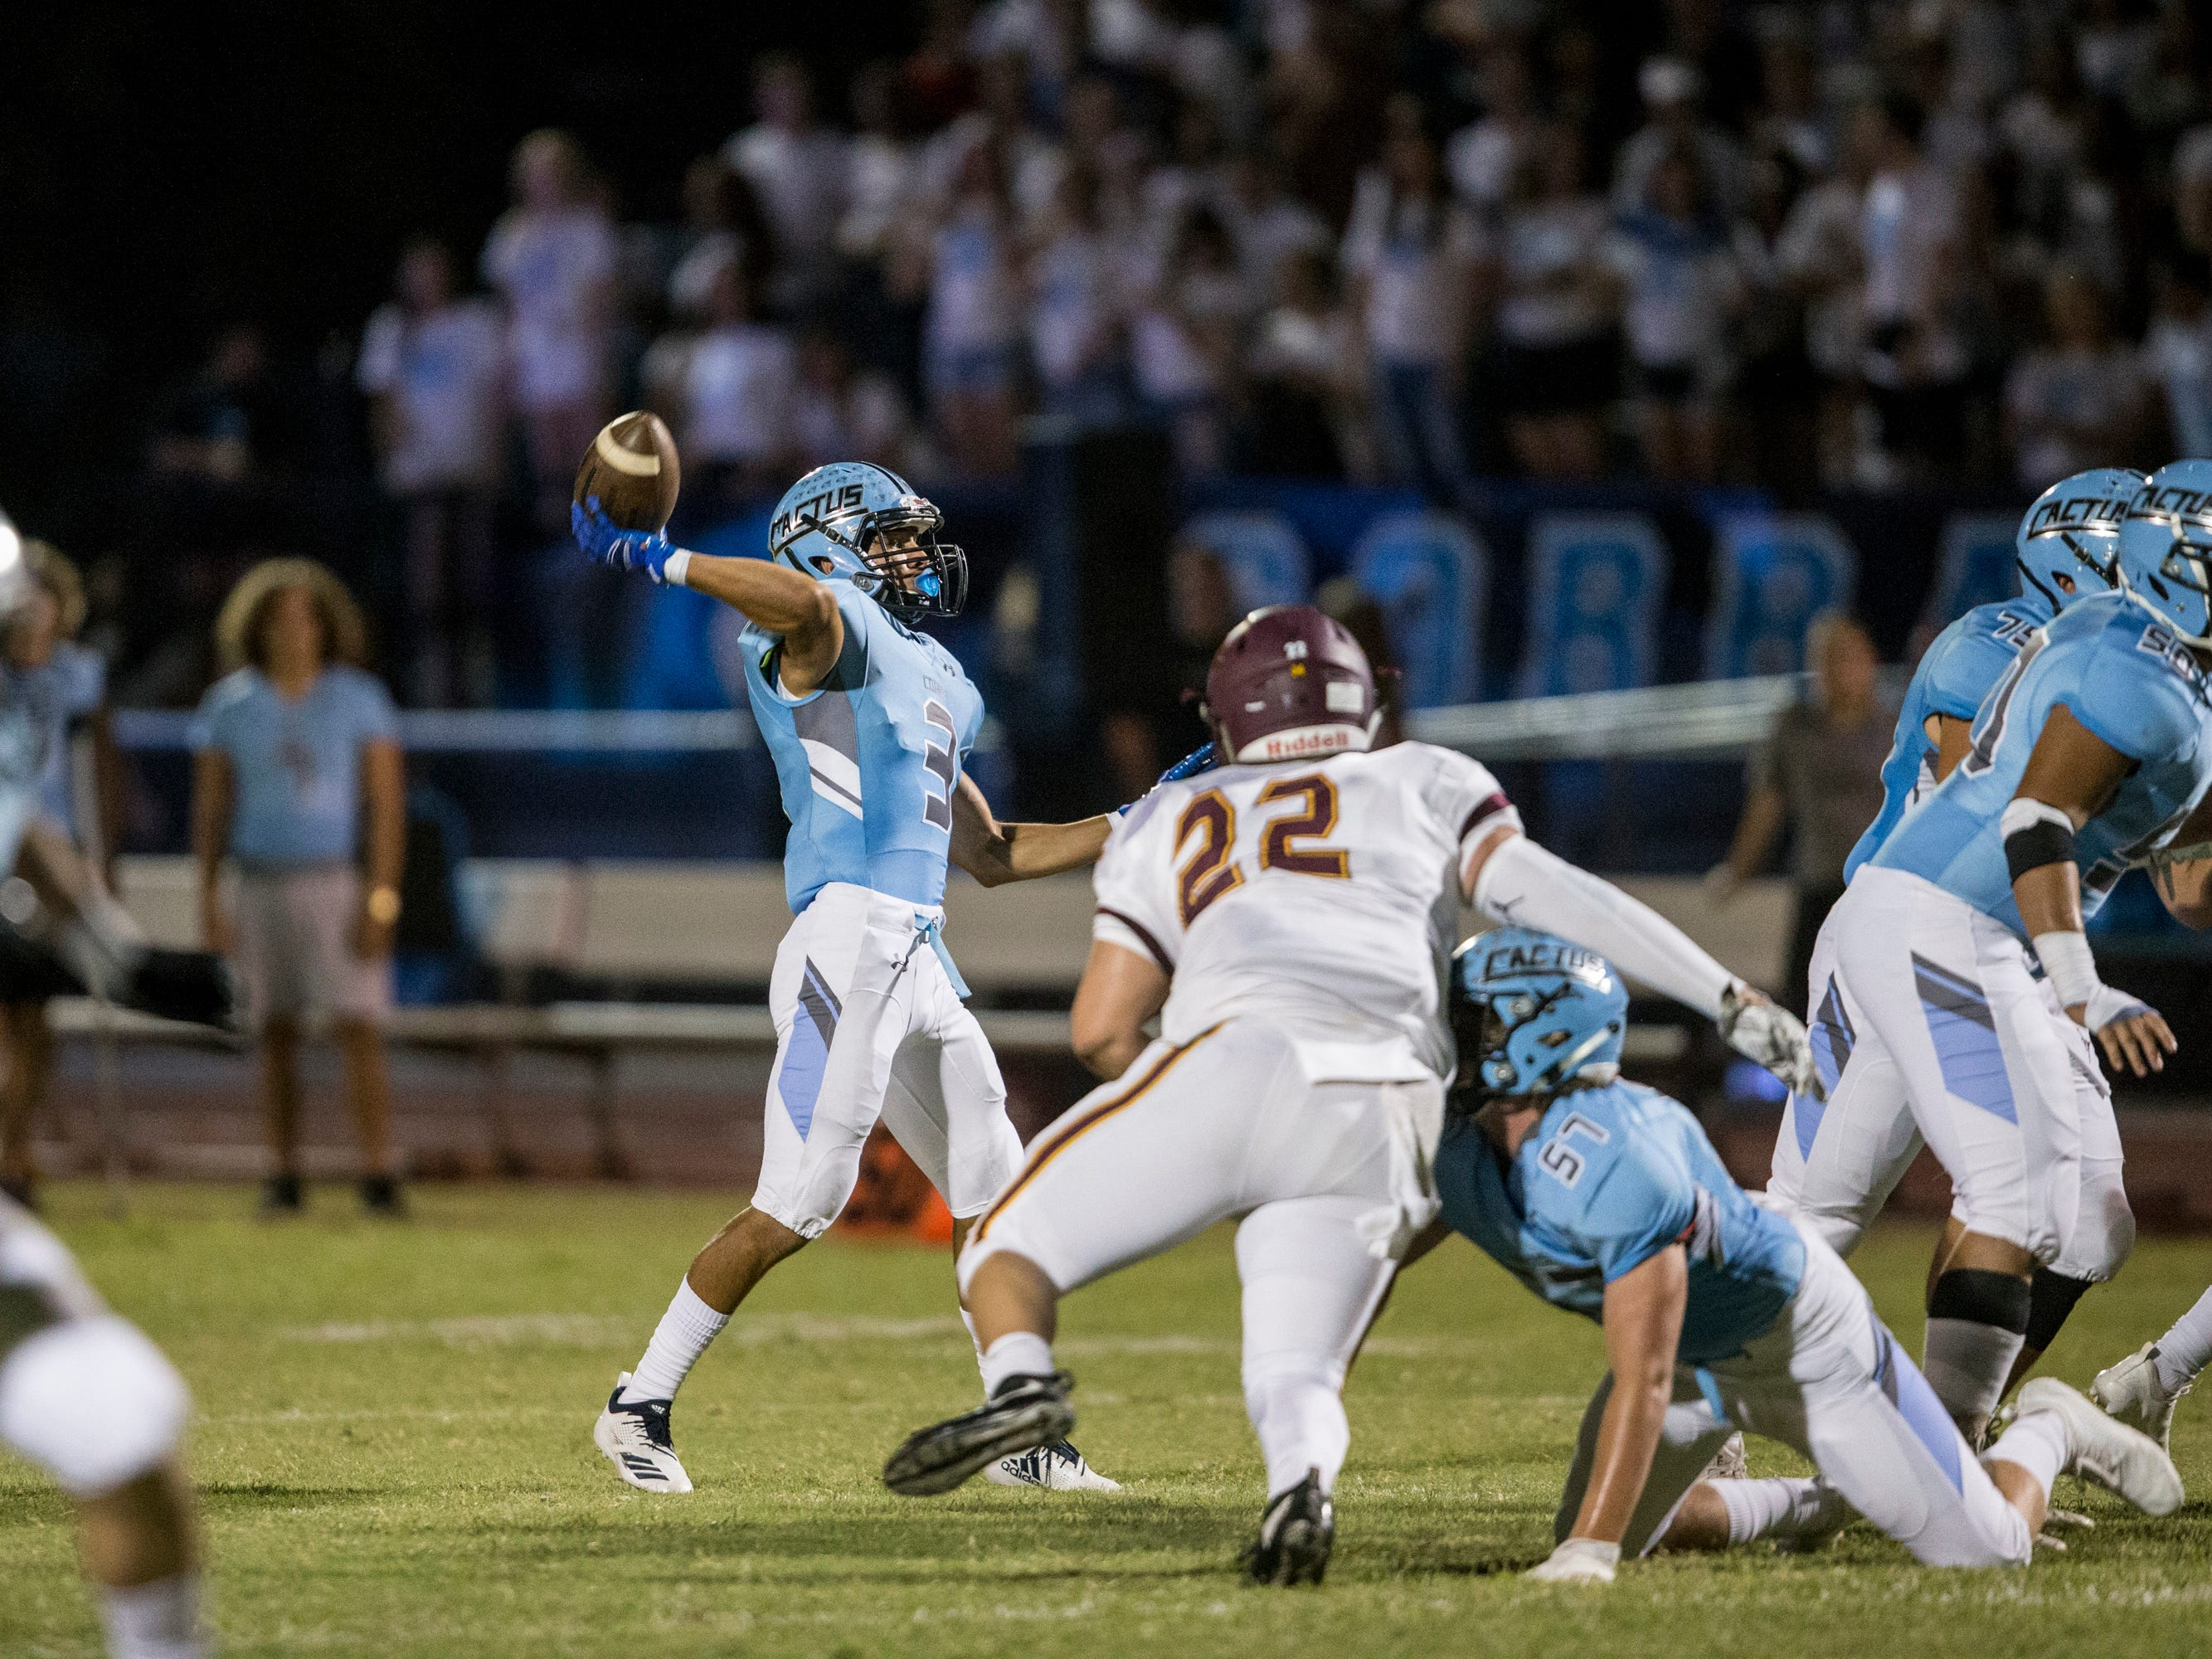 Cactus' Garrett Monroe throws for a touchdown against Salpointe in the 1st quarter on Friday, Sept. 14, 2018, at Cactus High School in Glendale, Ariz.